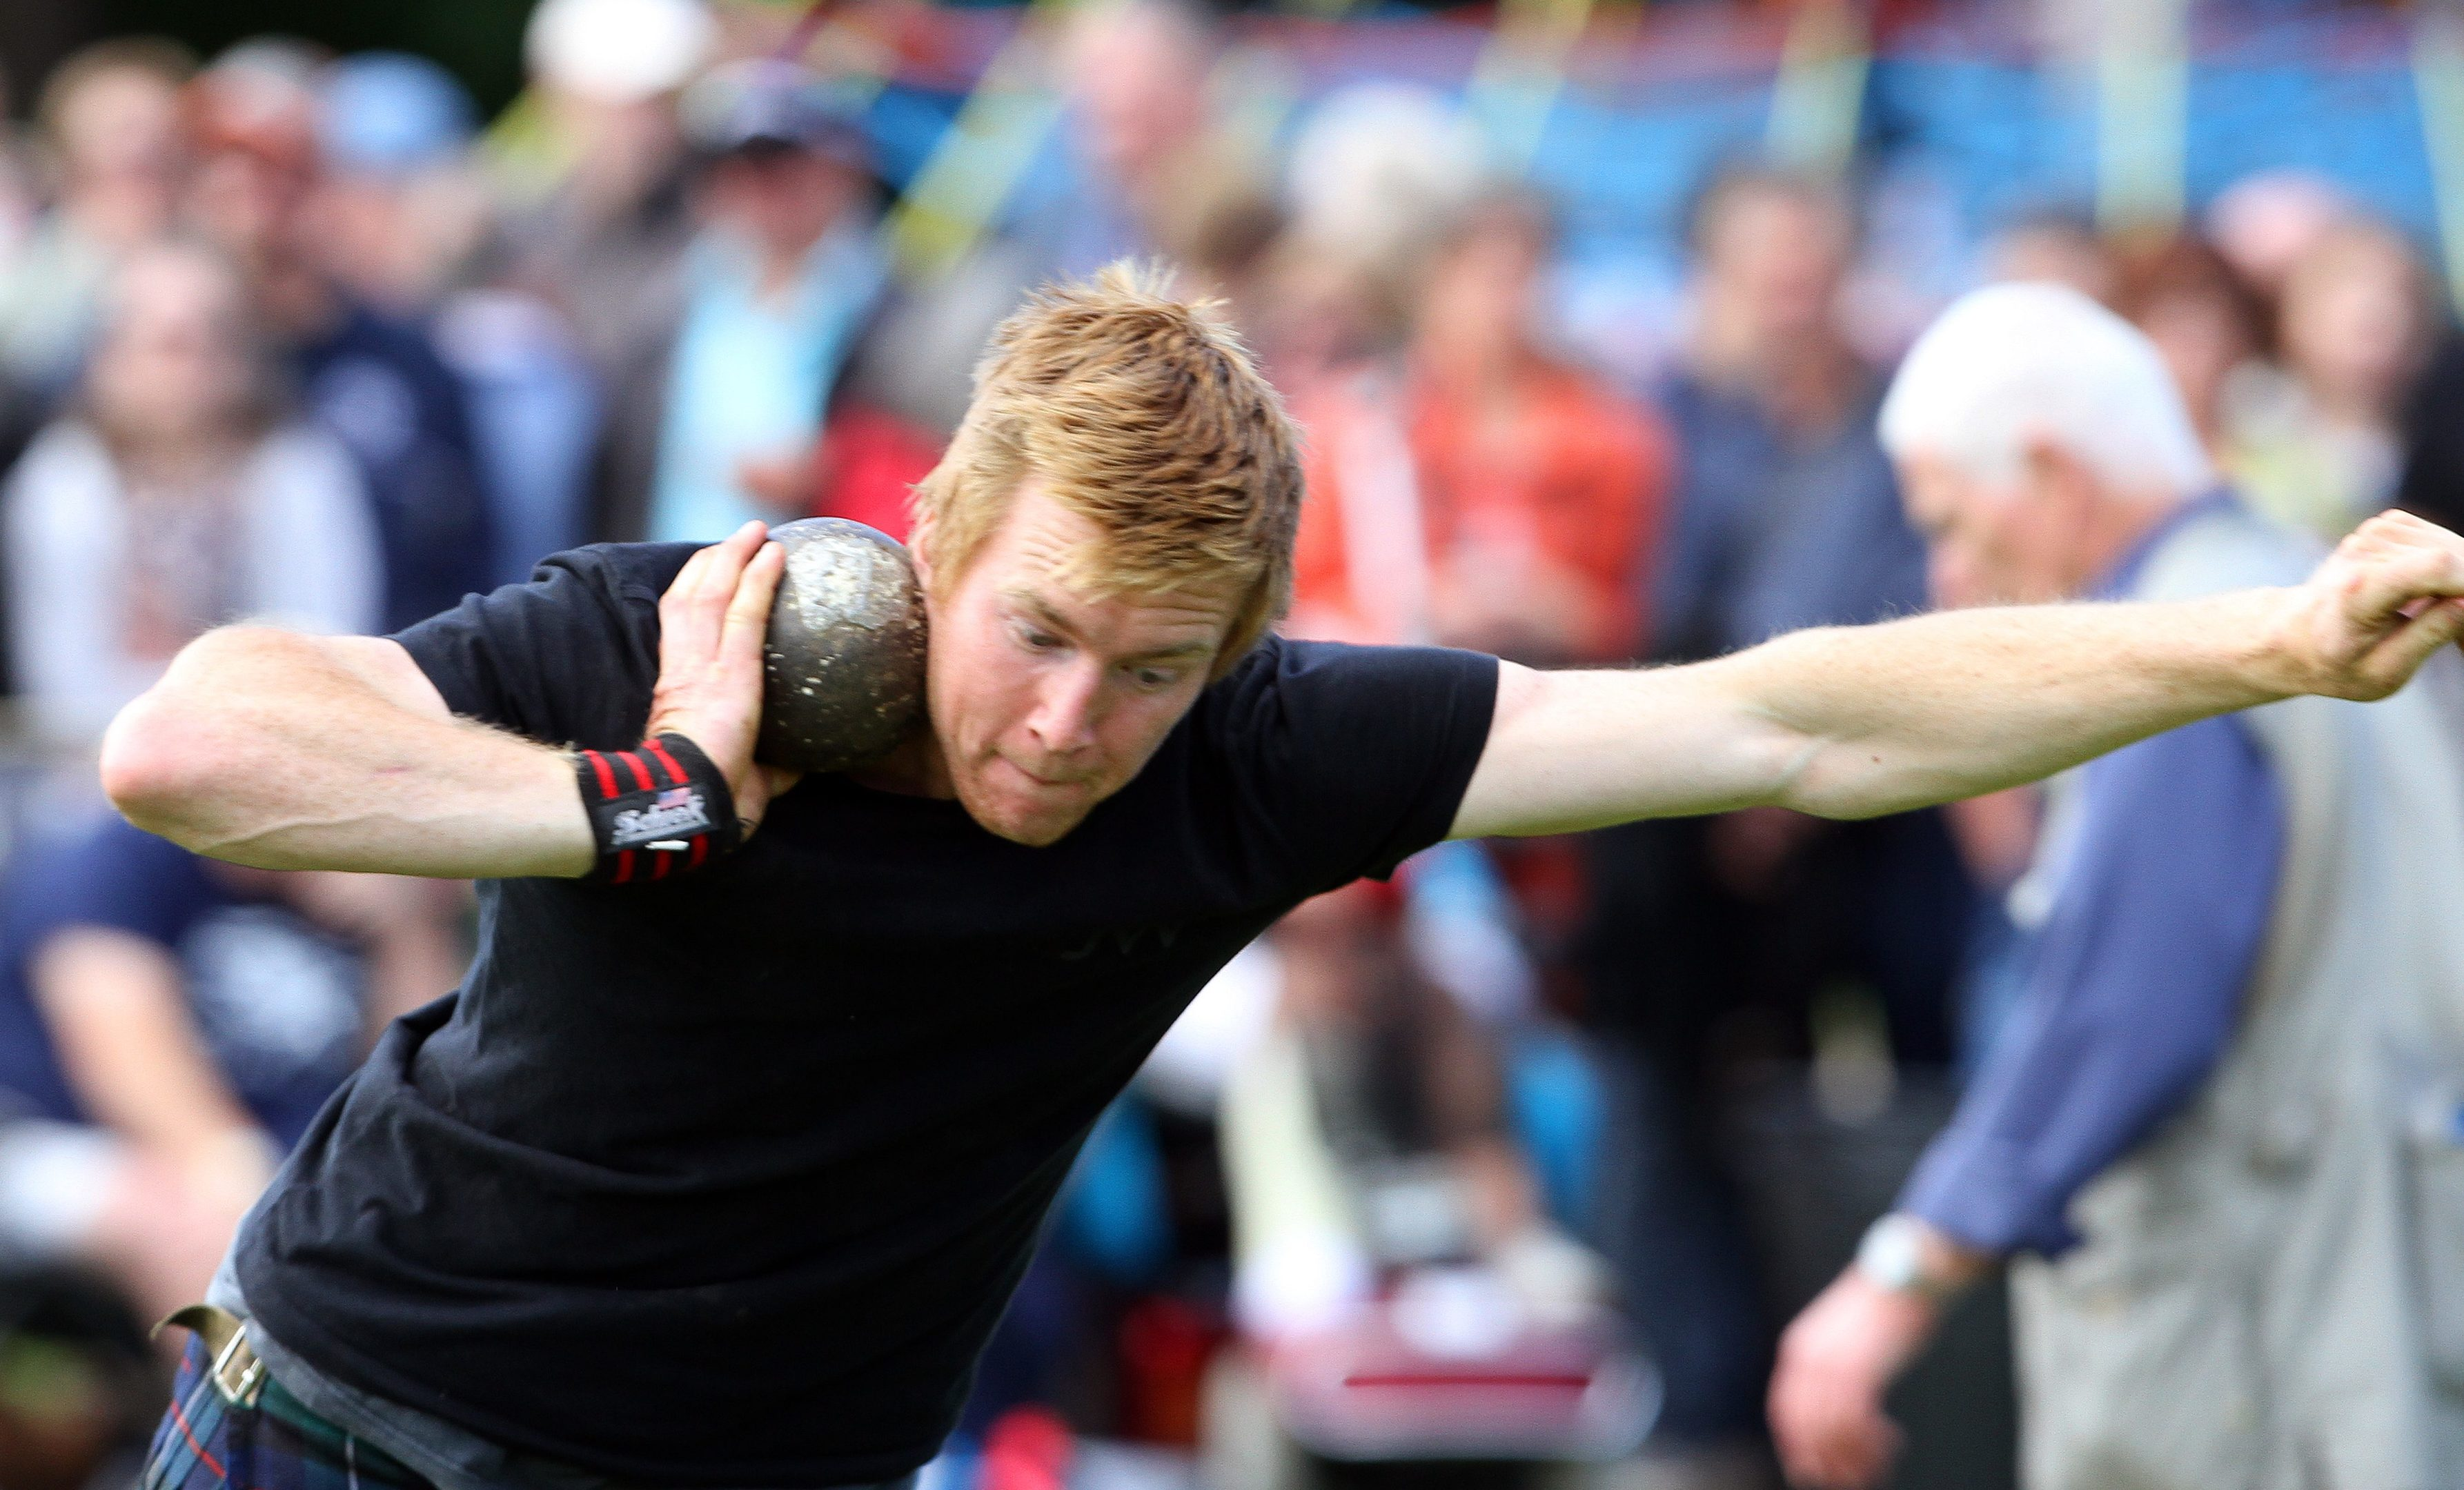 Pitlochry Highland Games,.